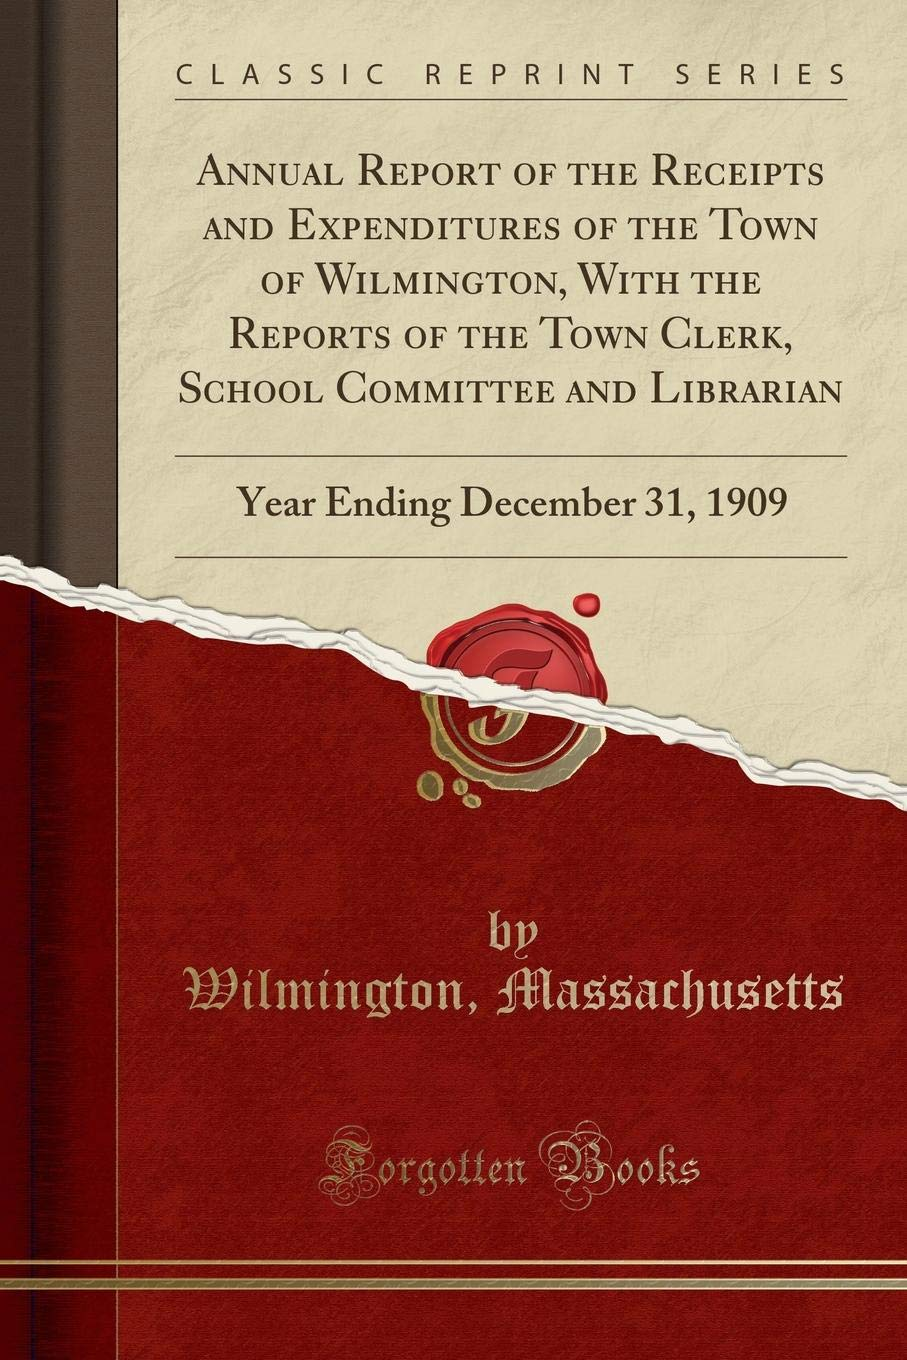 Download Annual Report of the Receipts and Expenditures of the Town of Wilmington, With the Reports of the Town Clerk, School Committee and Librarian: Year Ending December 31, 1909 (Classic Reprint) ebook